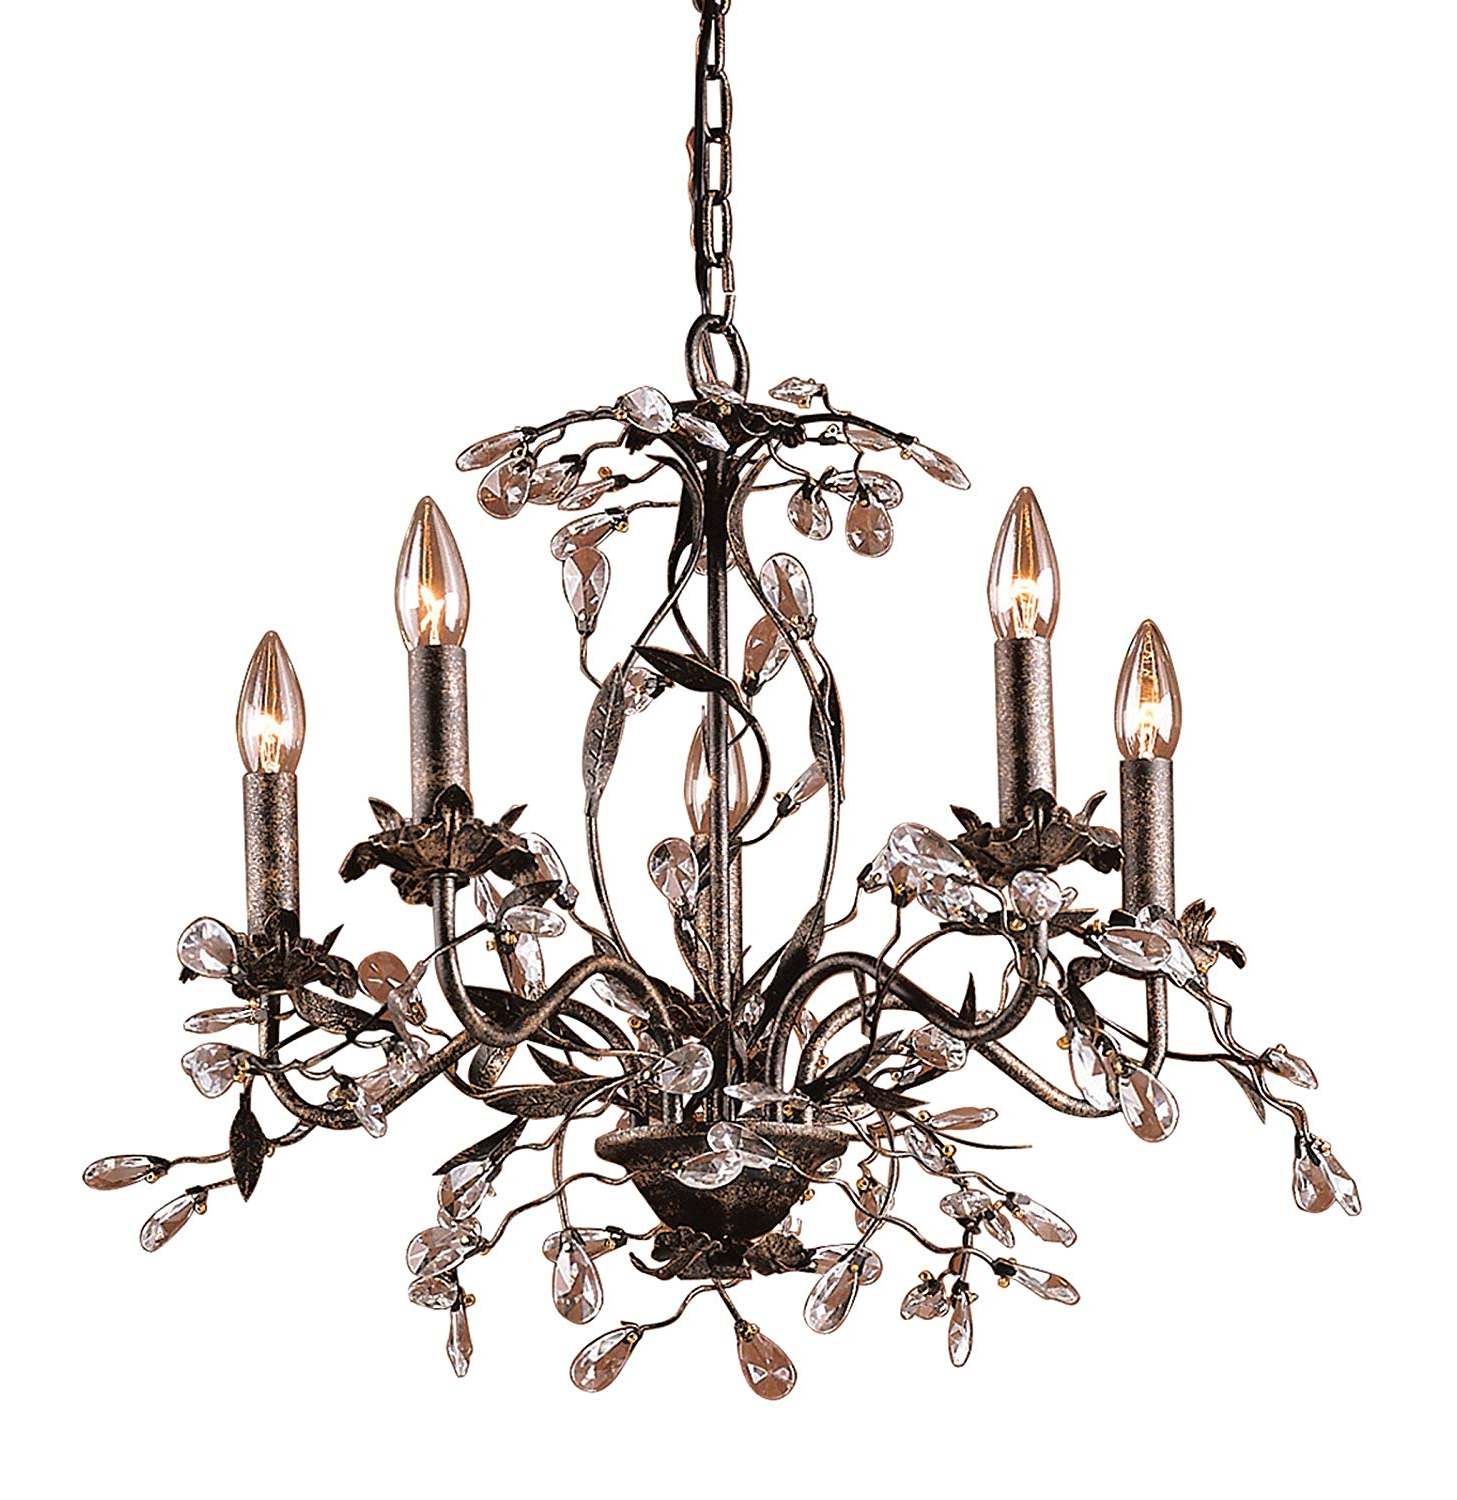 Camilla 9 Light Candle Style Chandeliers Within Best And Newest Elk 8053/5 5 Light Chandelier In Deep Rust And Crystal Droplets (View 8 of 25)